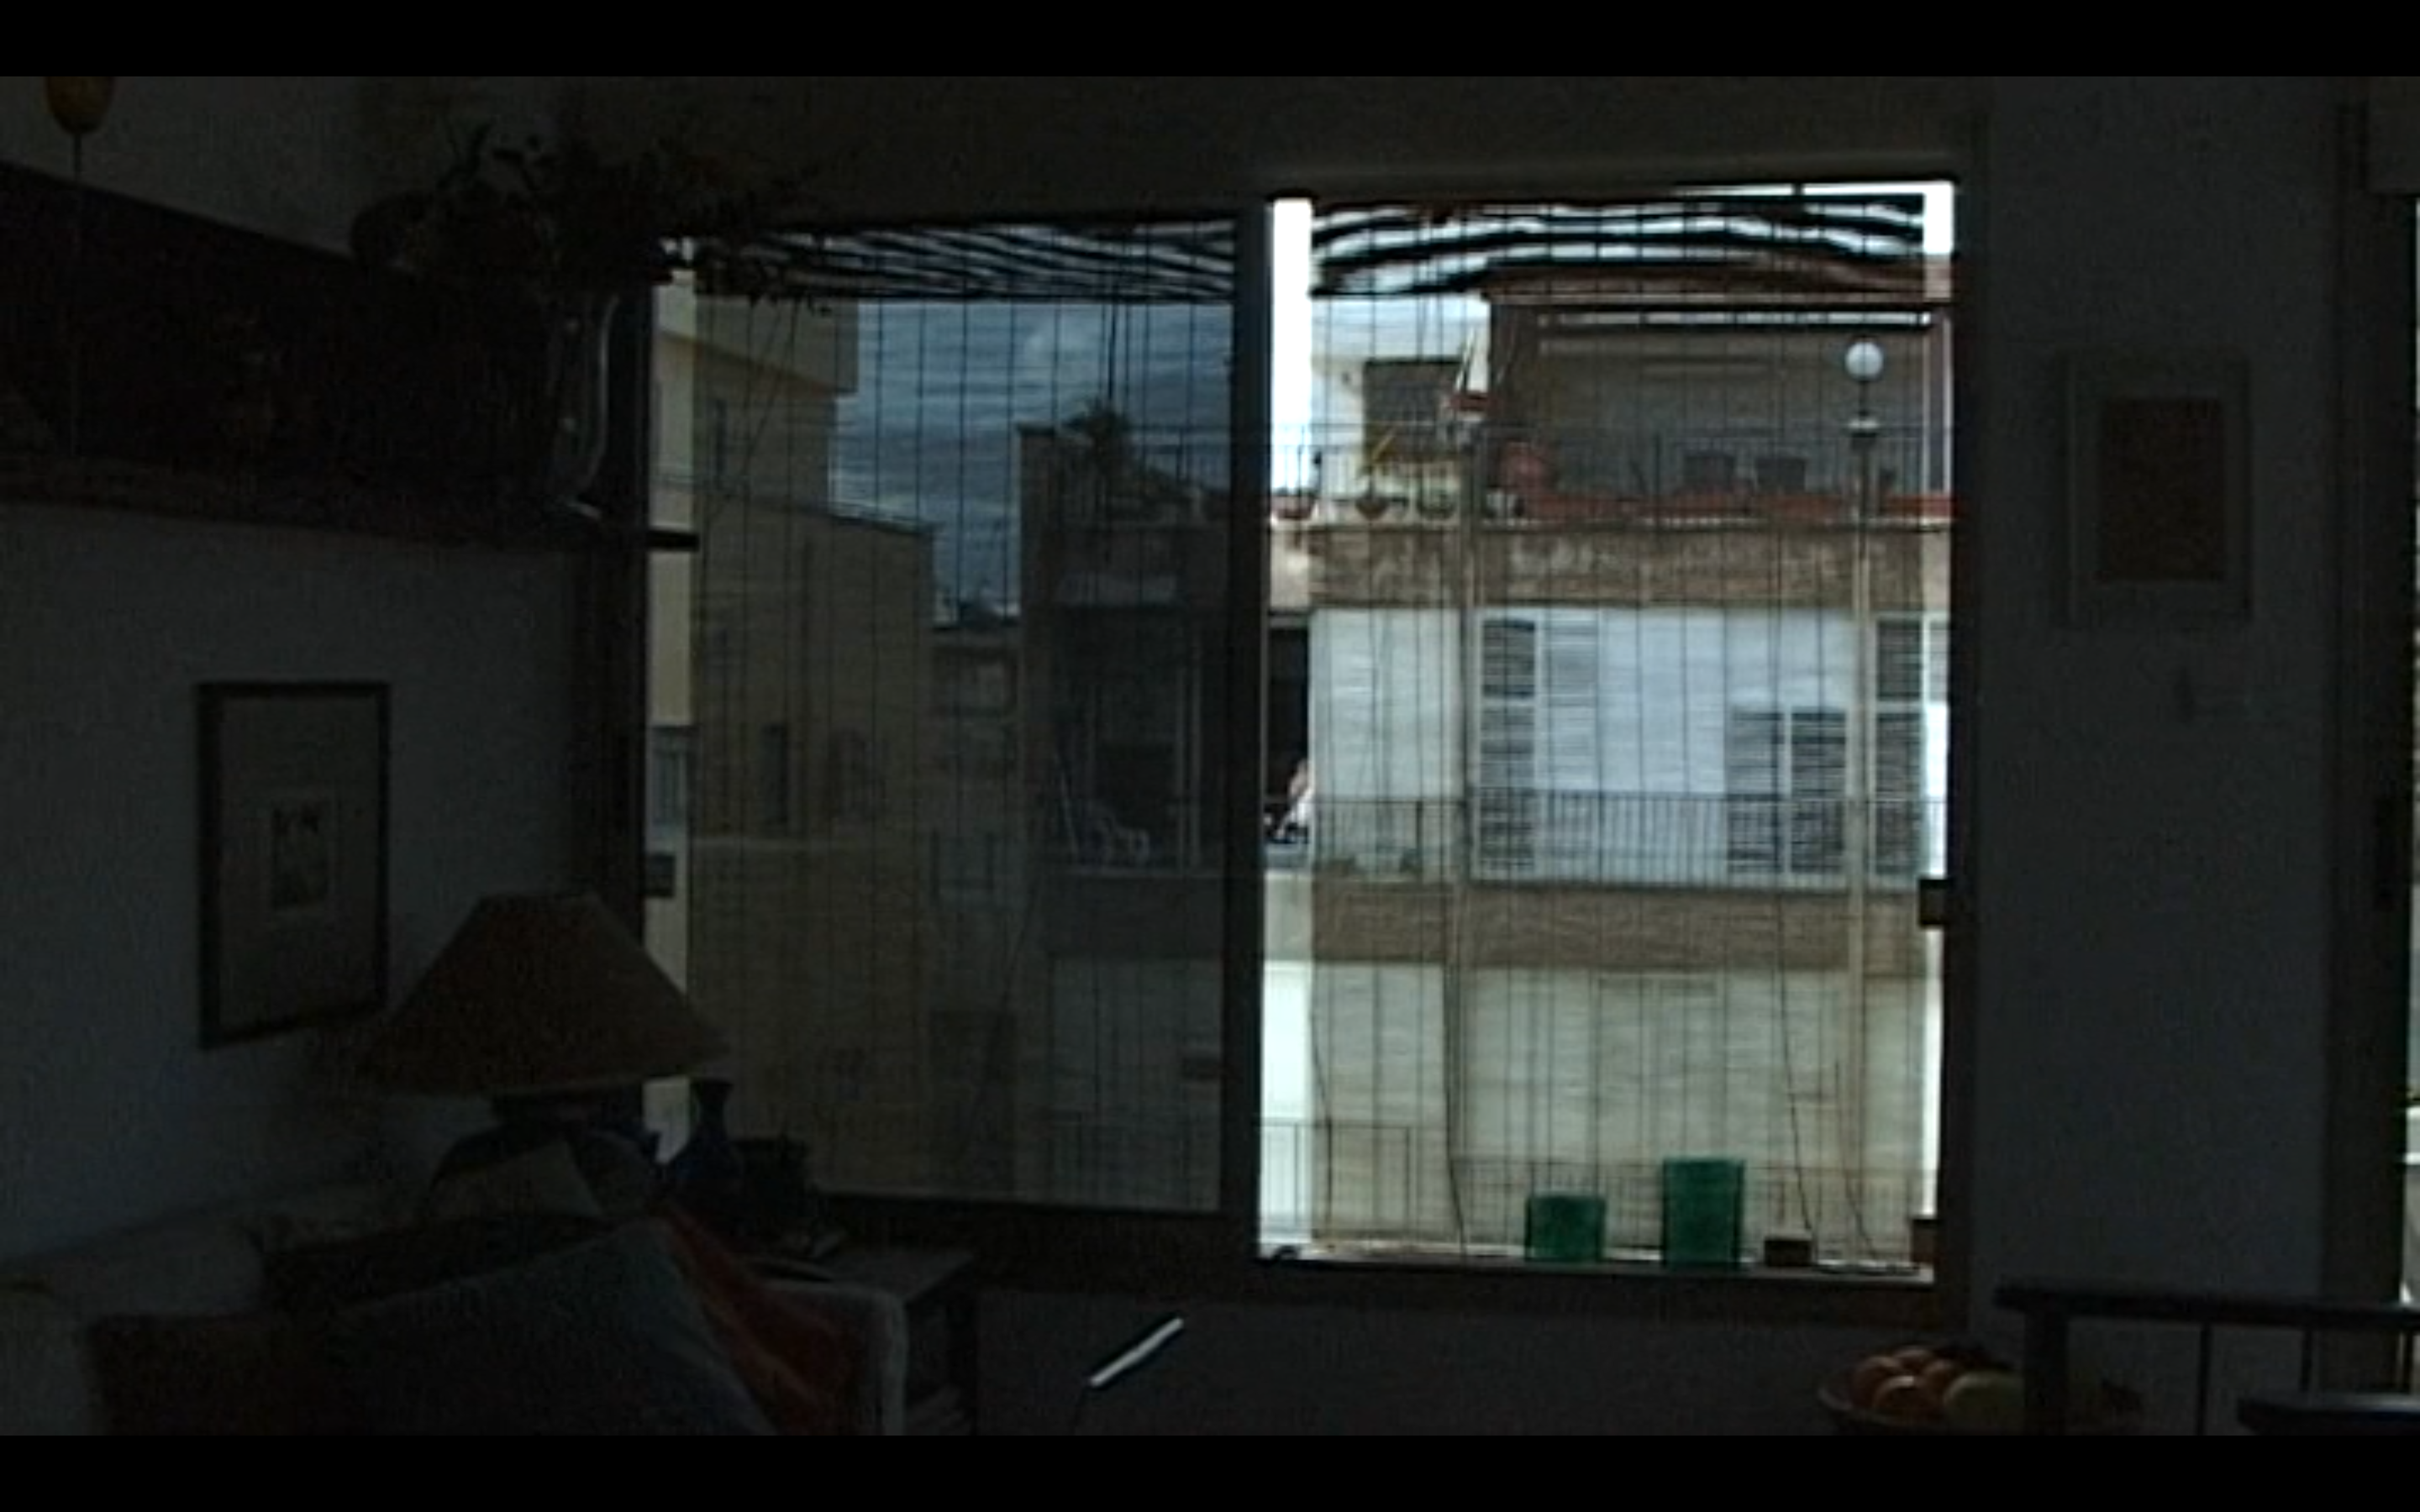 Là-bas, Chantal Akerman, 2006